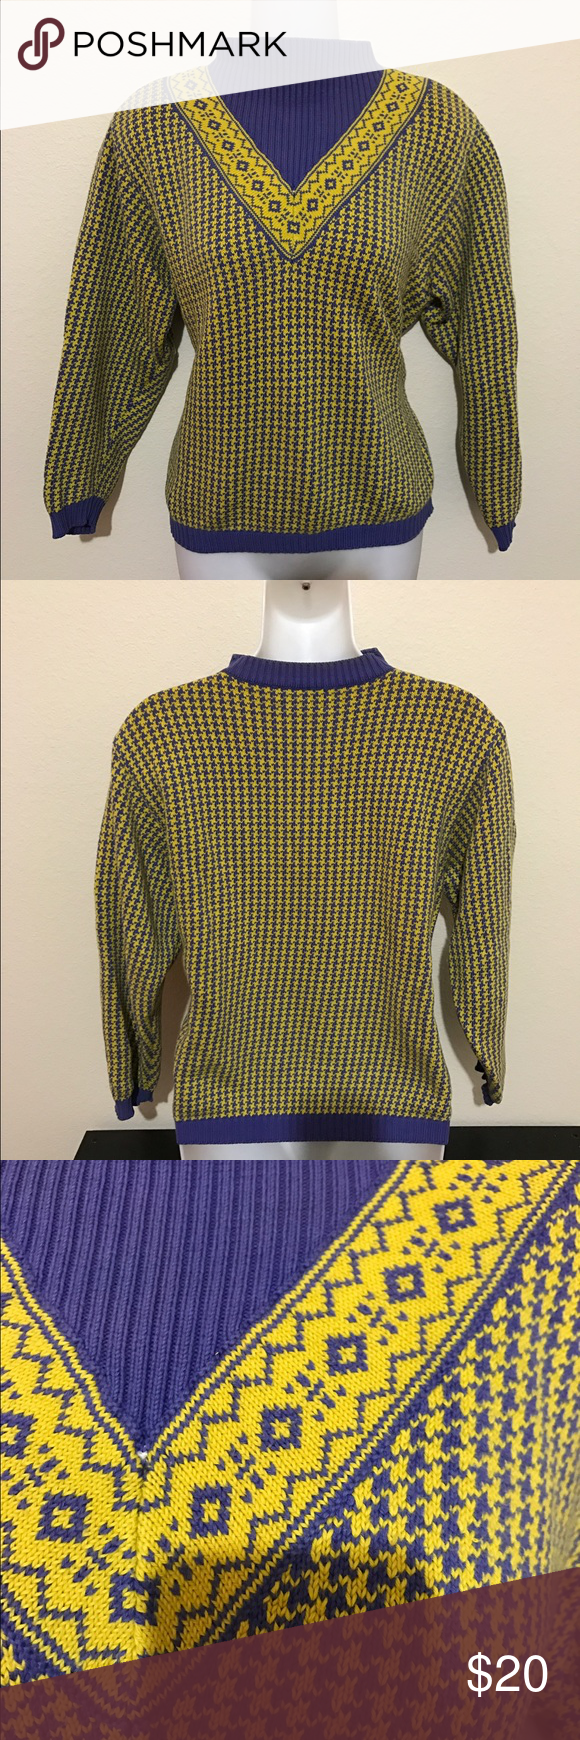 UNITED COLORS OF BENETTON ITALY Vintage Sweater XXL USA Pre owned in good condition. Discolored in the inside of the neck. See pictures for details. from a smoke and pet-free home and are sold as-is.  SHIPPING: Shipping will be done via USPS. Will be send 1 to 3 days after the purchase.  If you have any questions do not hesitate to ask and I'll try to answer them as quickly and as best as I can.  Thank you for checking my item and please check out my other items for sale in my closet…